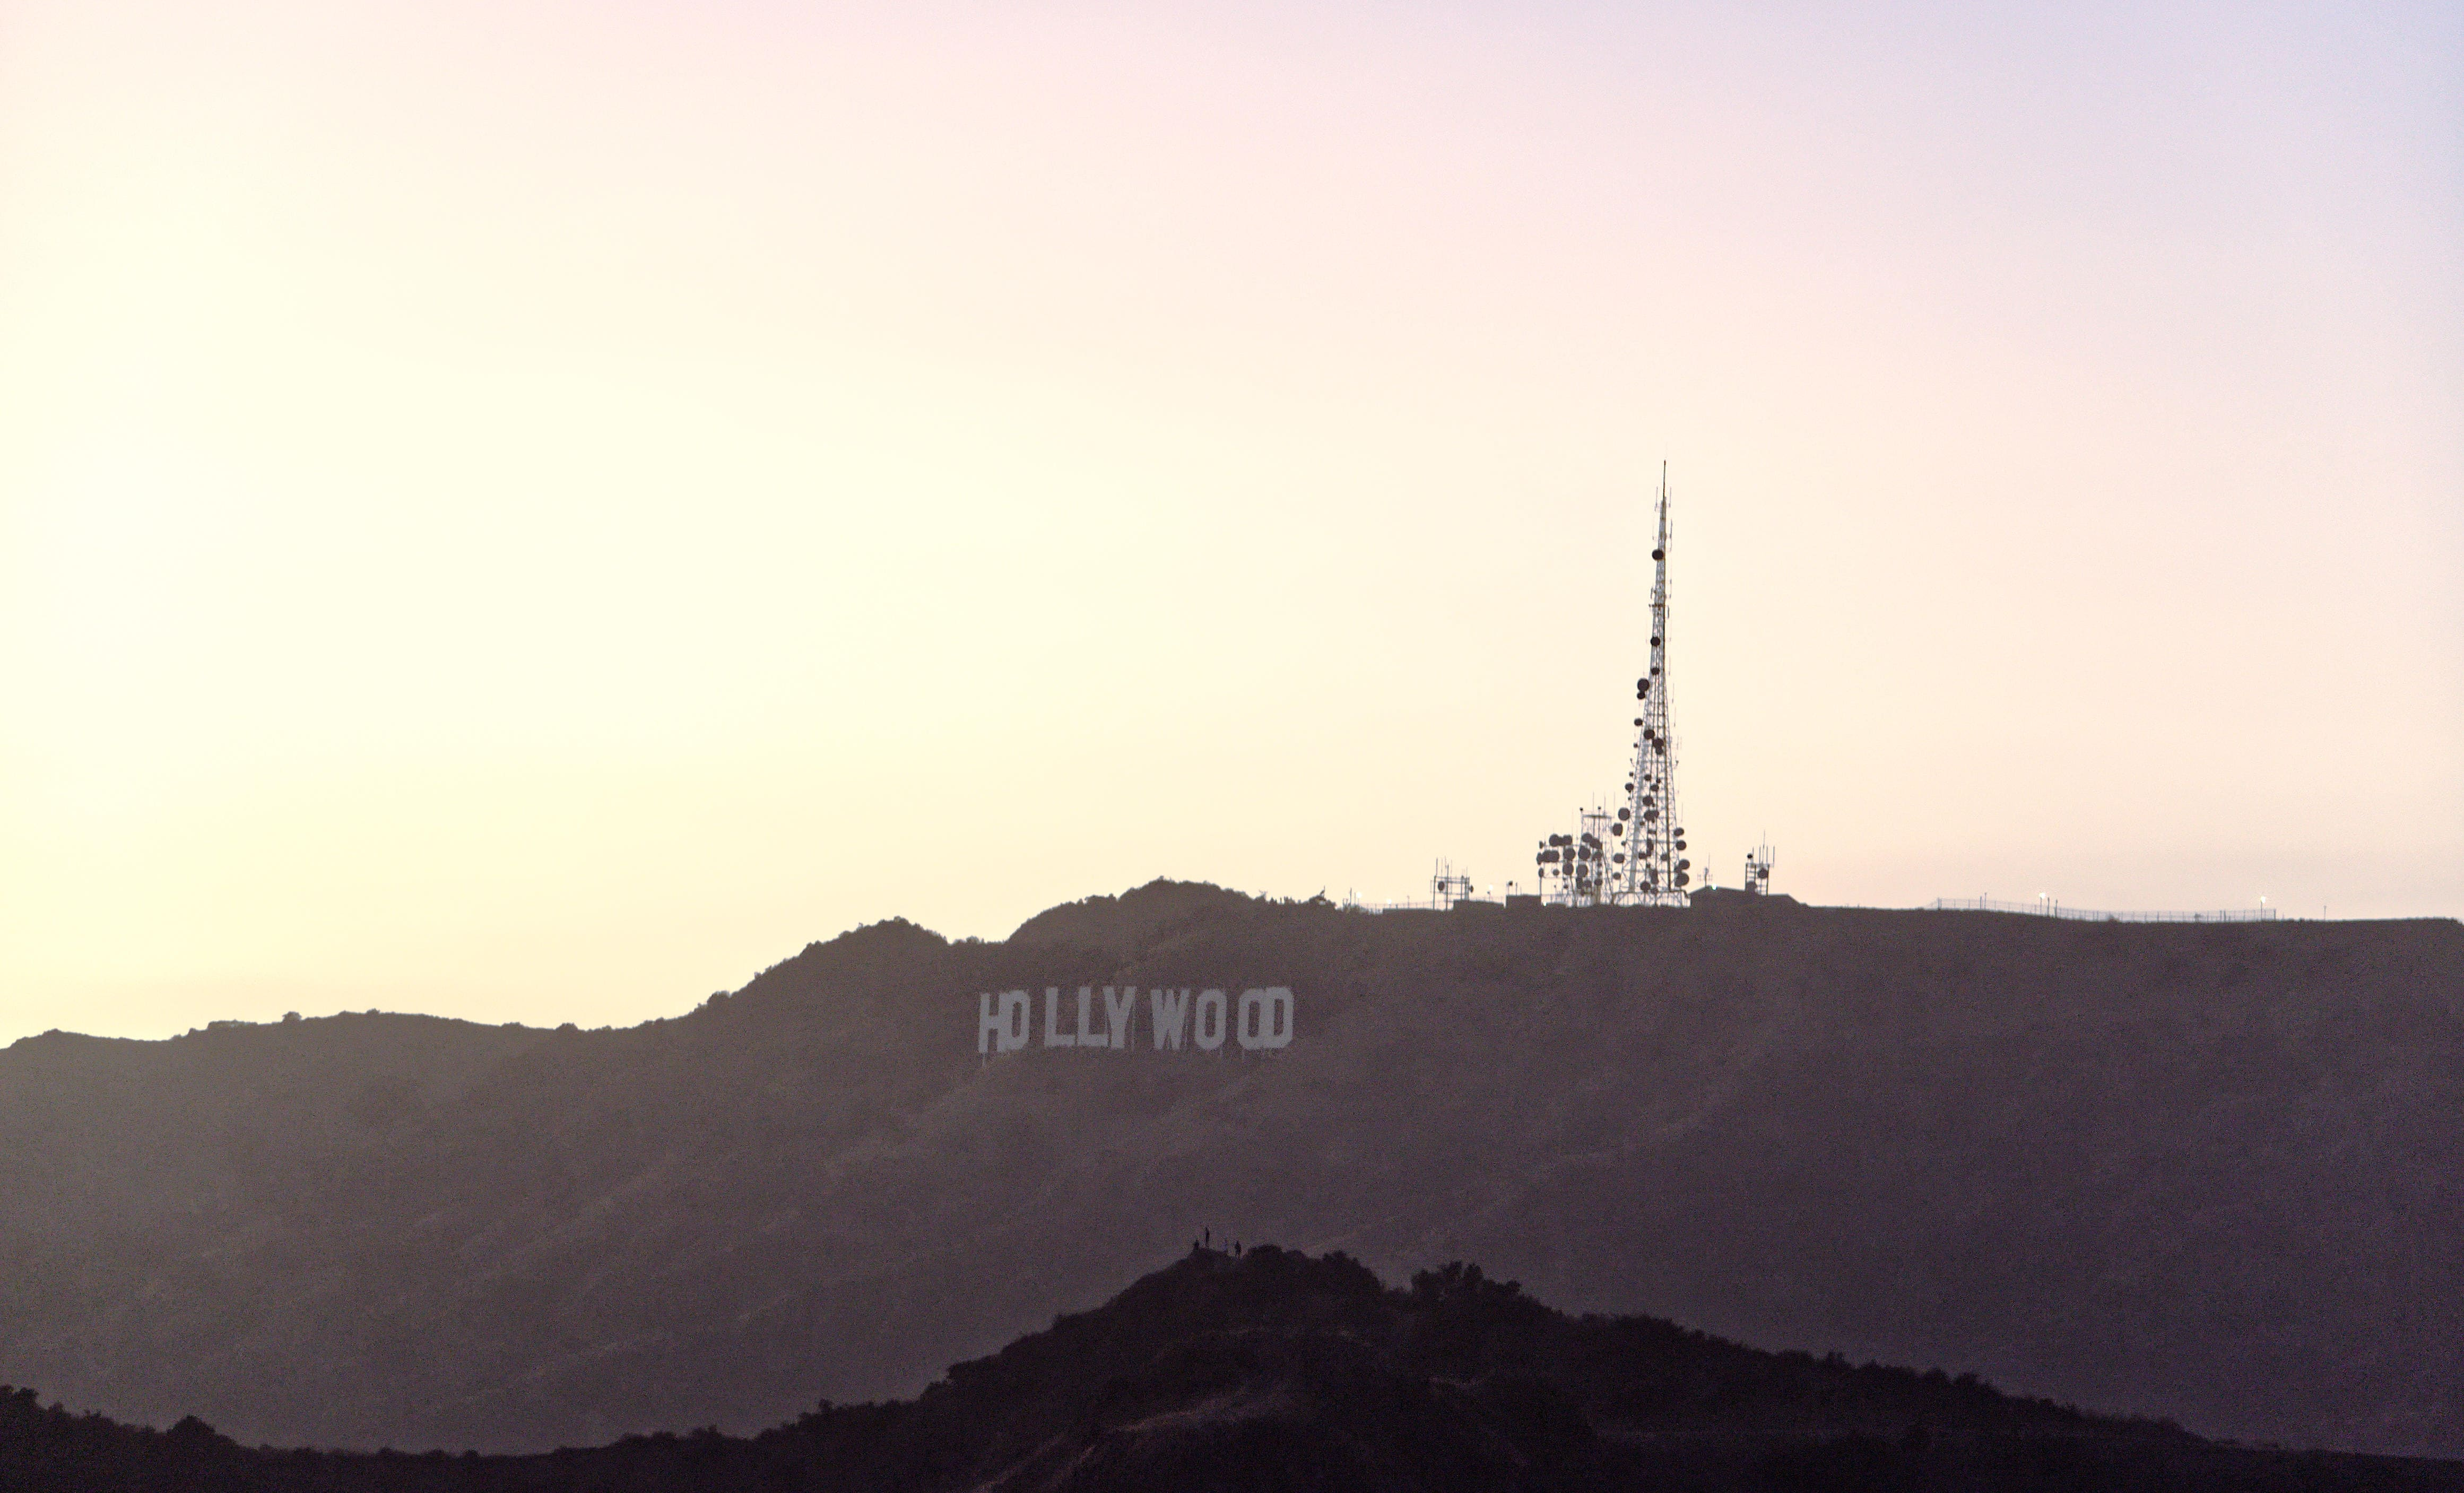 The Hollywood sign seen from the Griffith Observatory in Los Angeles, CA